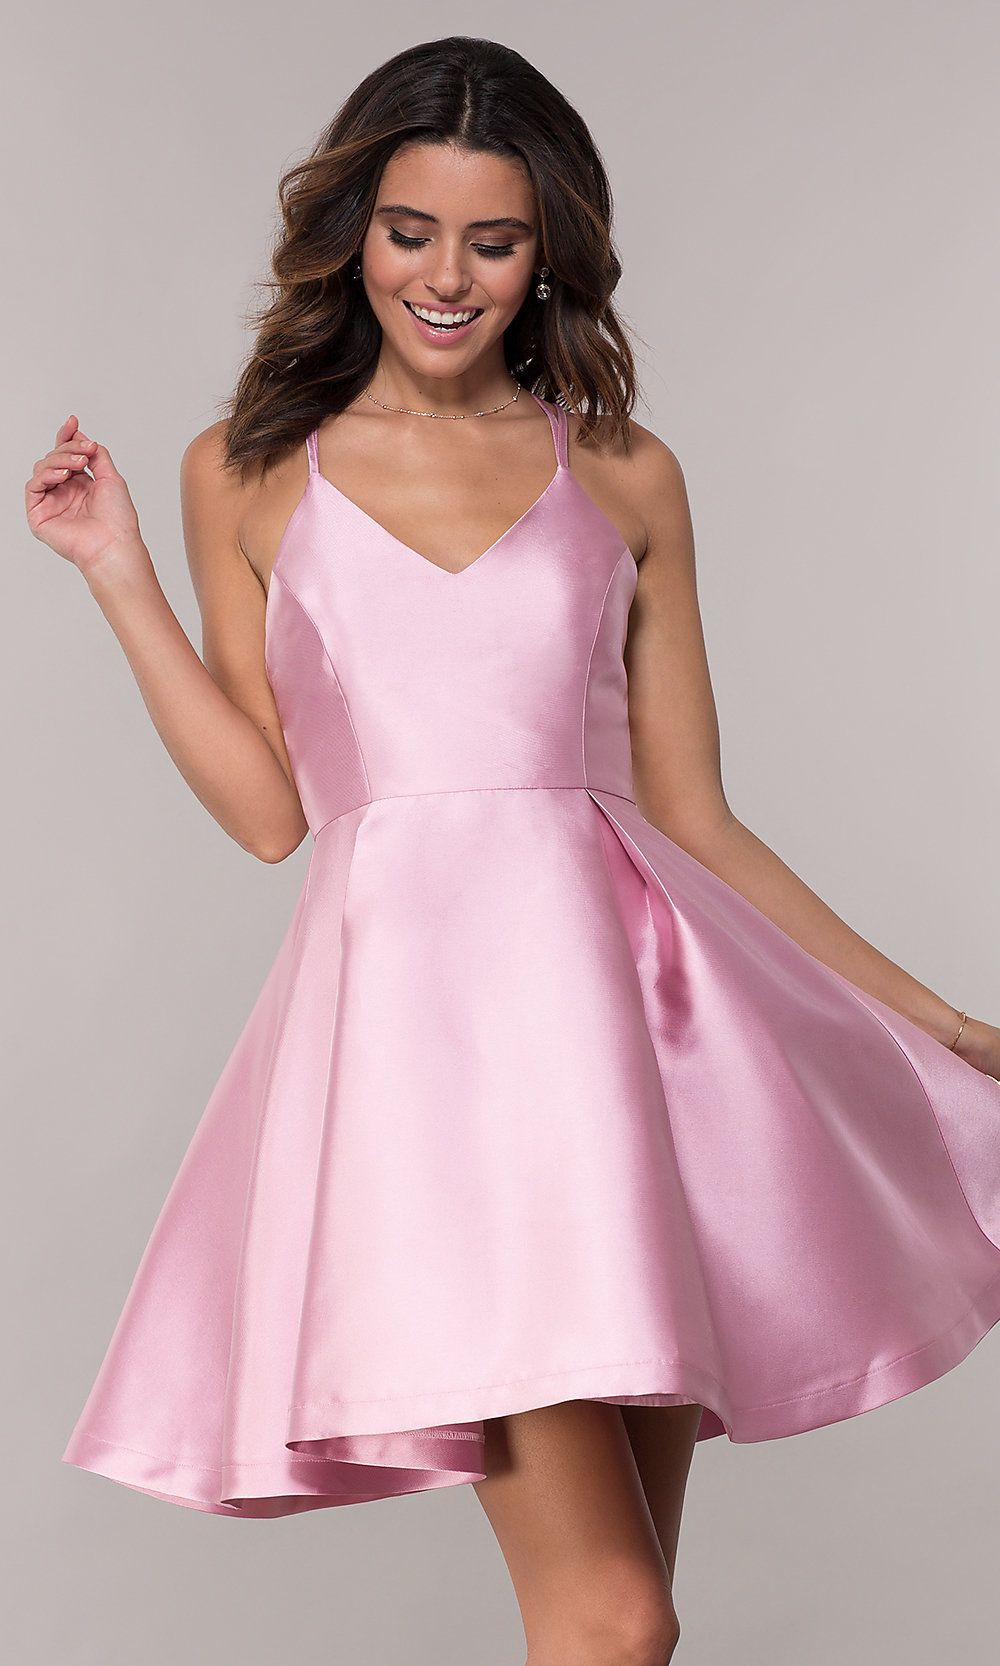 Fit And Flare V Neck Short Homecoming Dress Promgirl Girls Formal Dresses Dresses Homecoming Dresses [ 1666 x 1000 Pixel ]